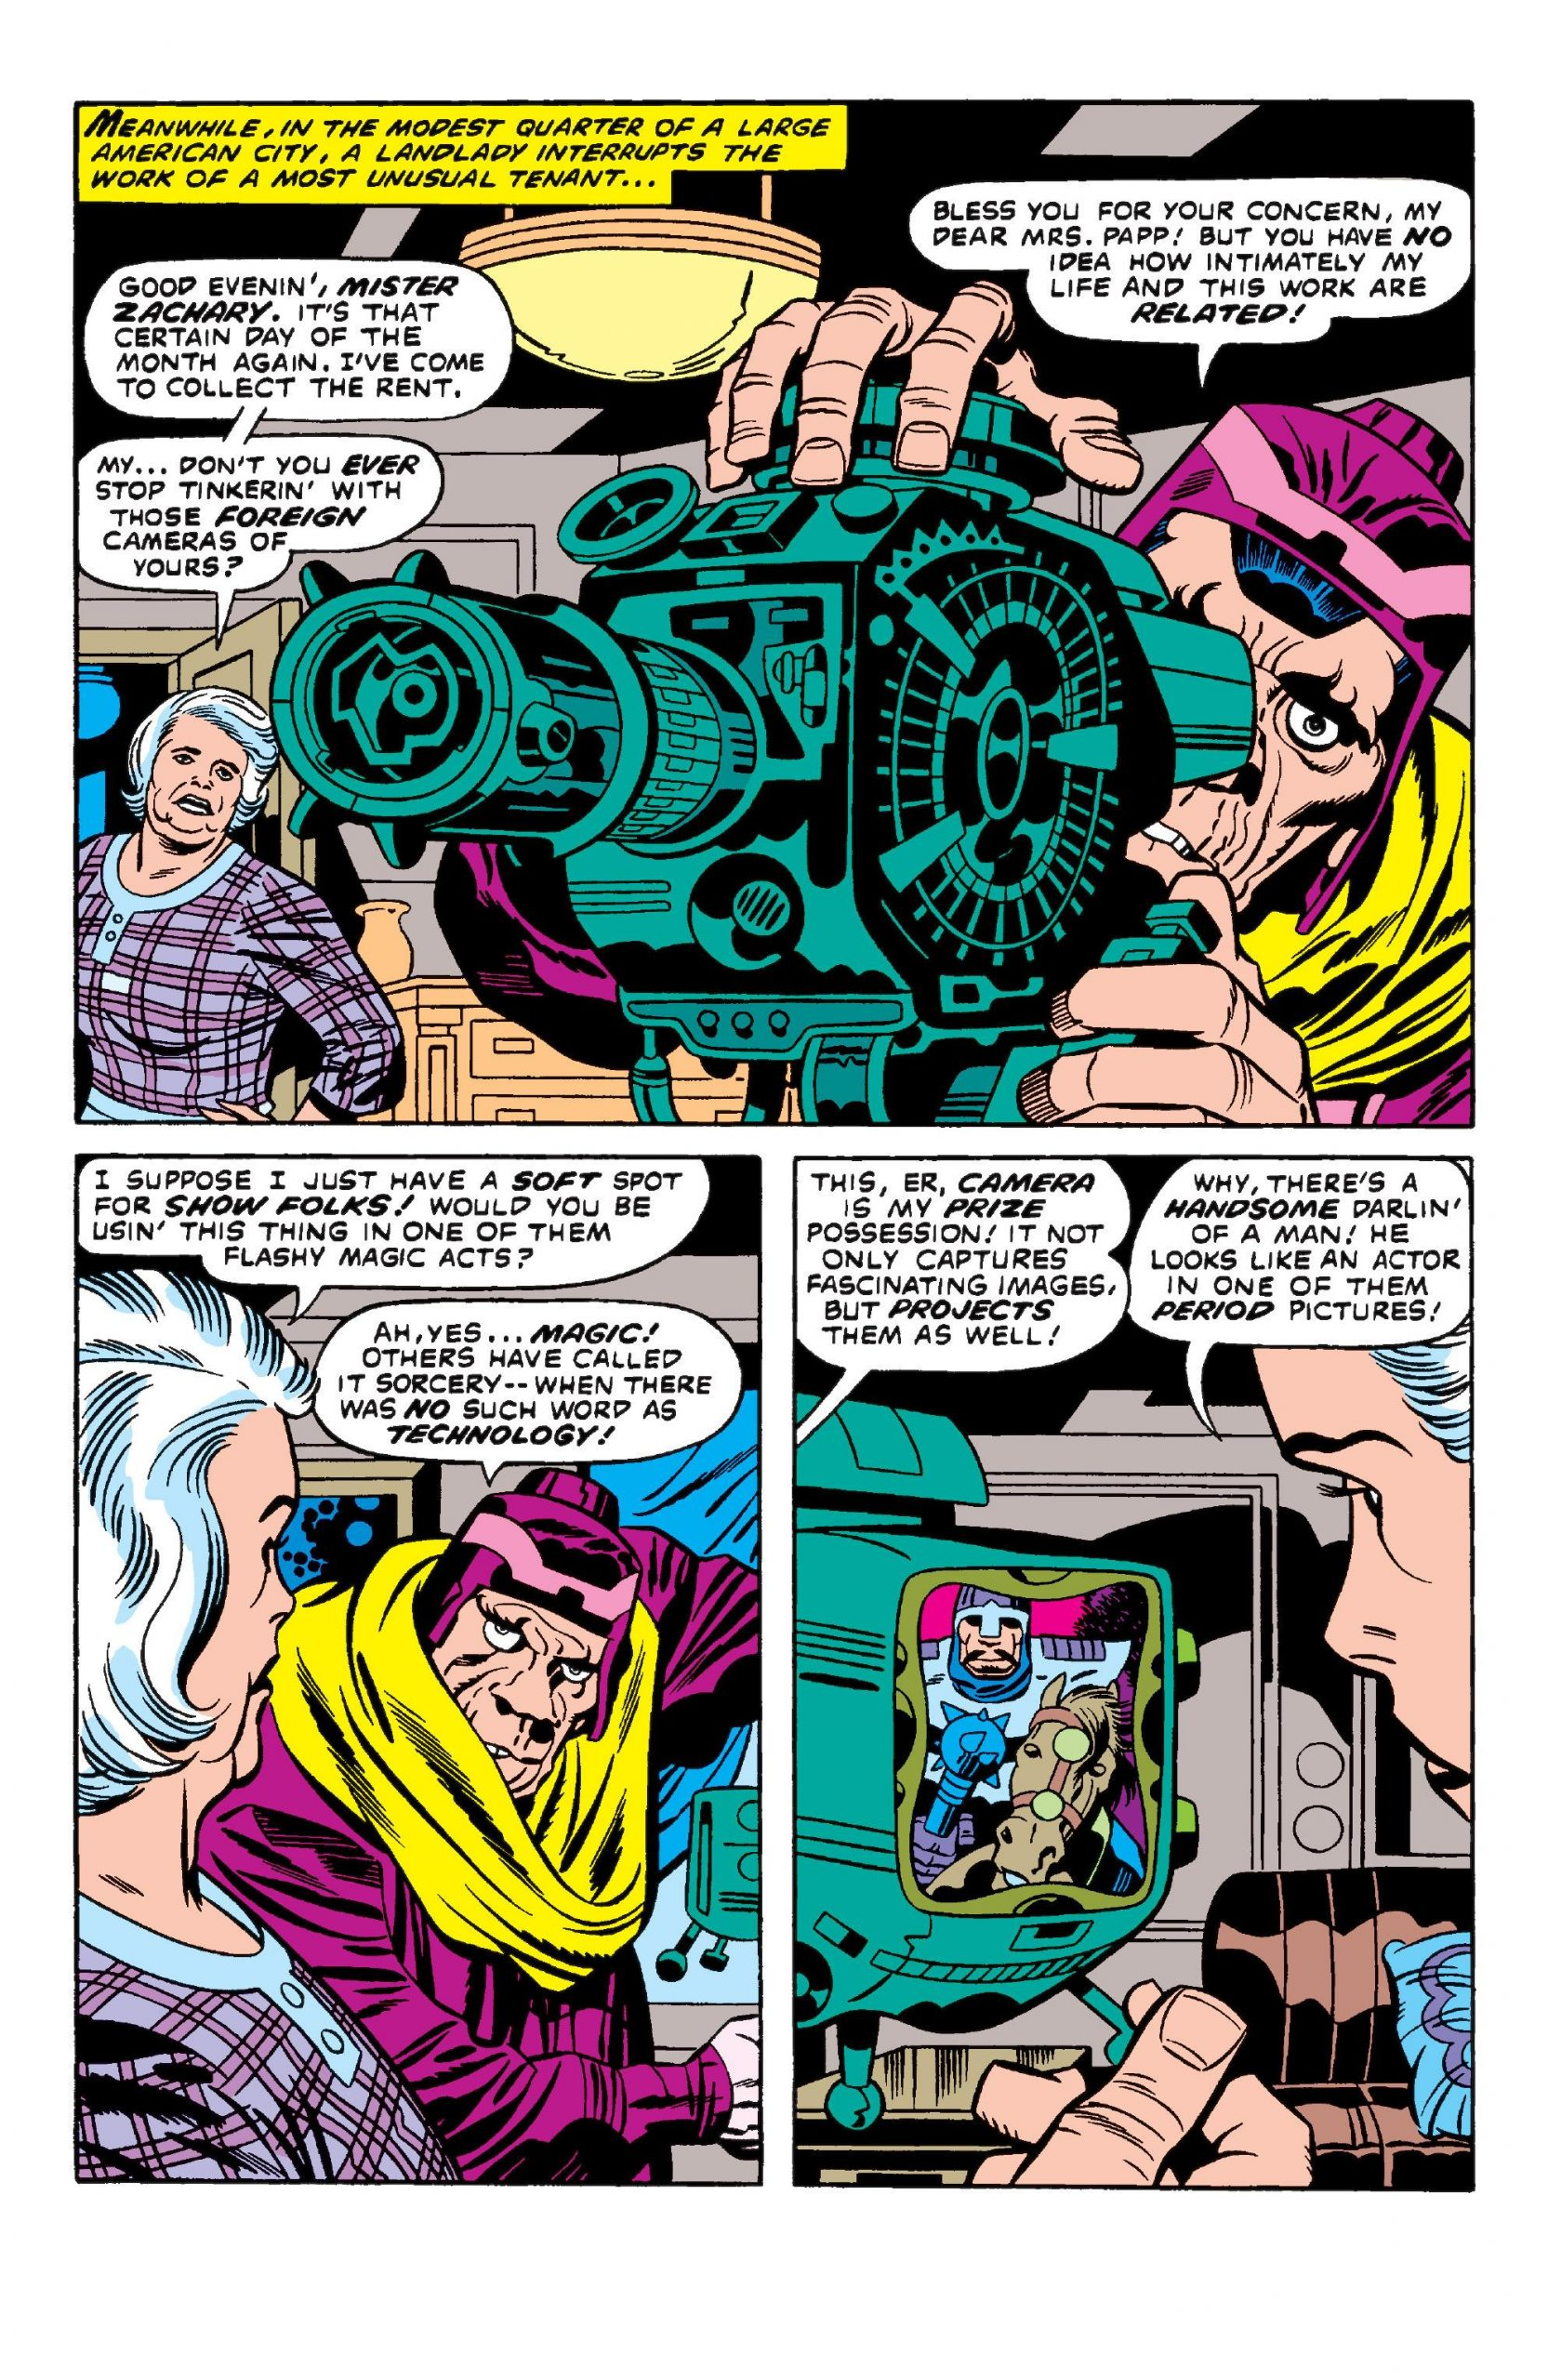 The Eternals by Jack Kirby V2 review